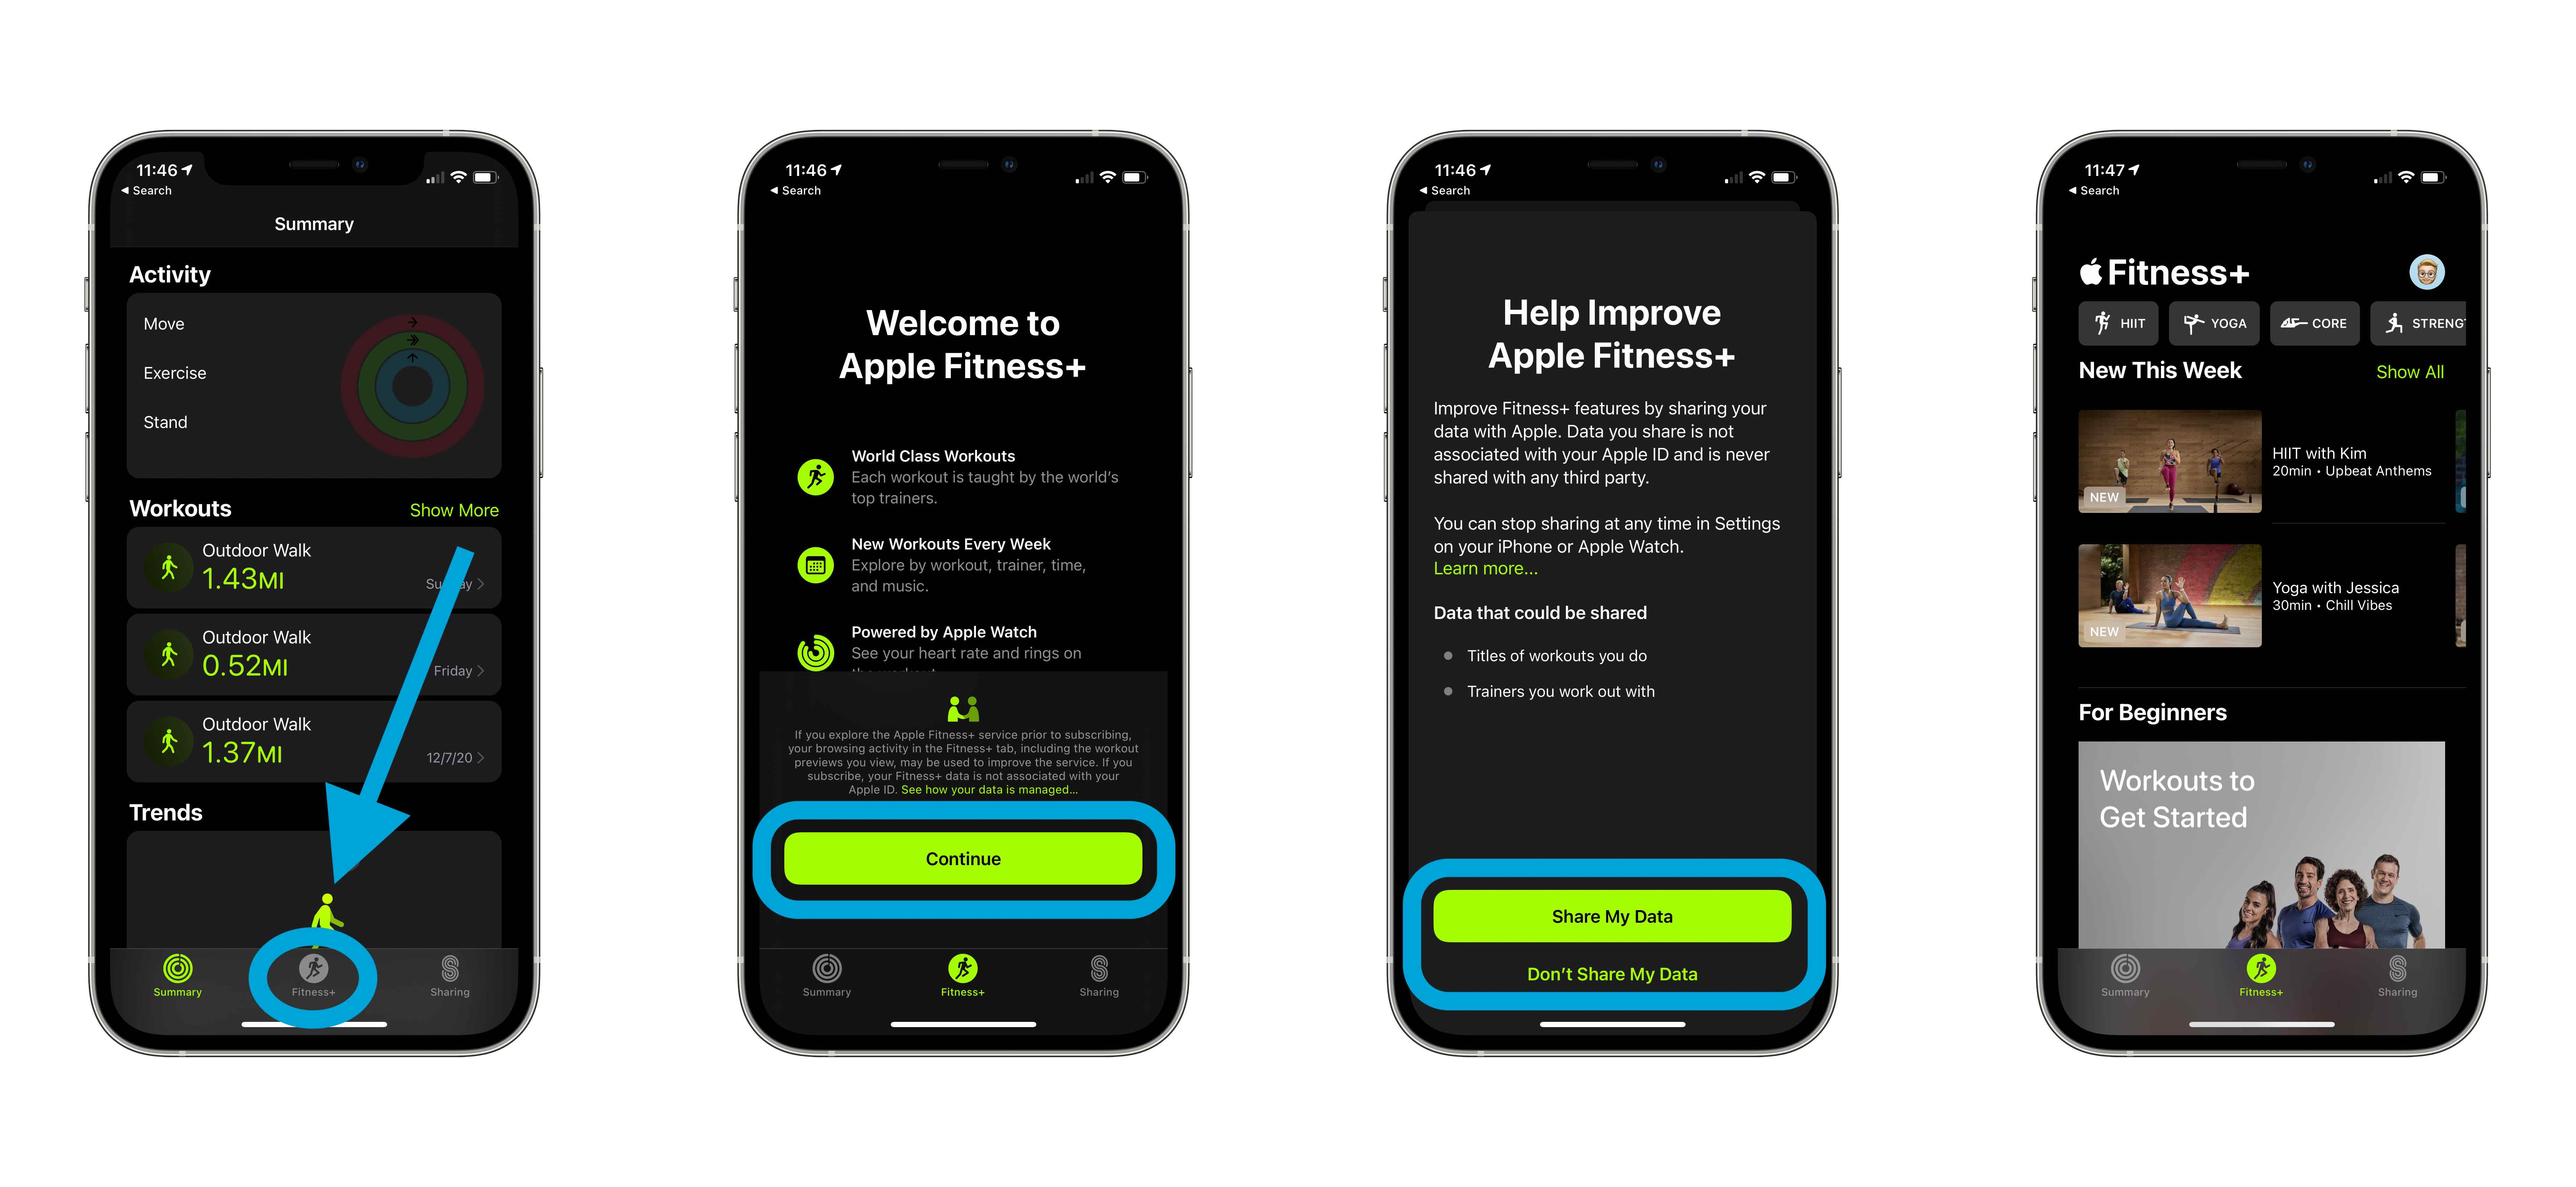 How to use Apple Fitness+ on iPhone signing up, more